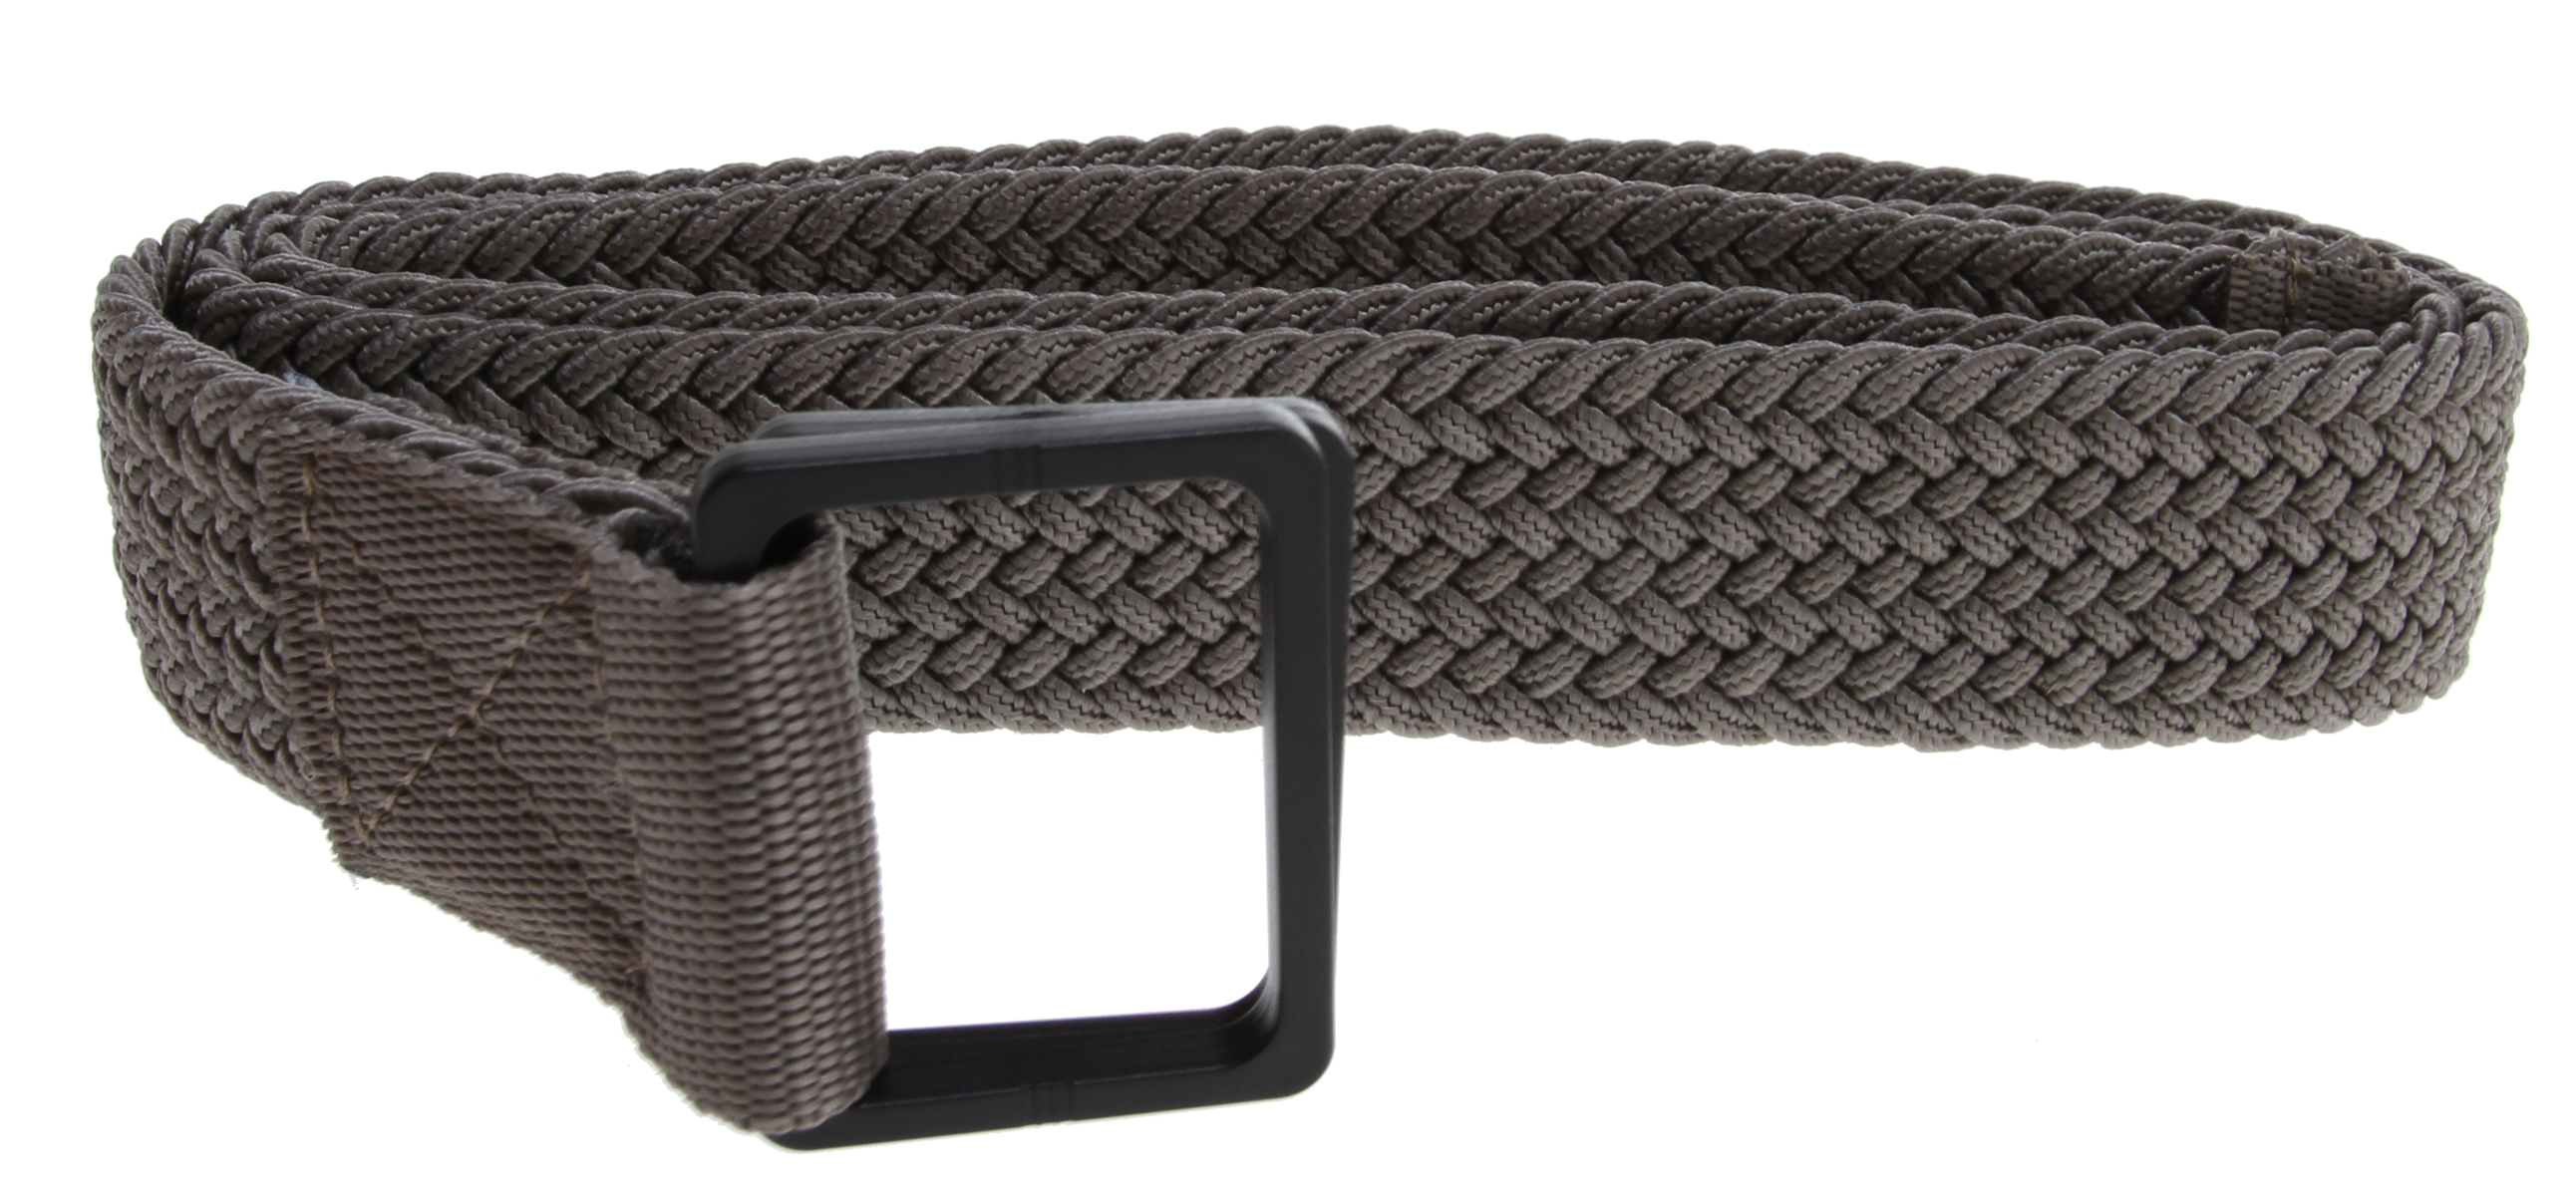 Woven elastic belt, airport security ready. Dcshoecousa woven label. 100% polyester - $12.95